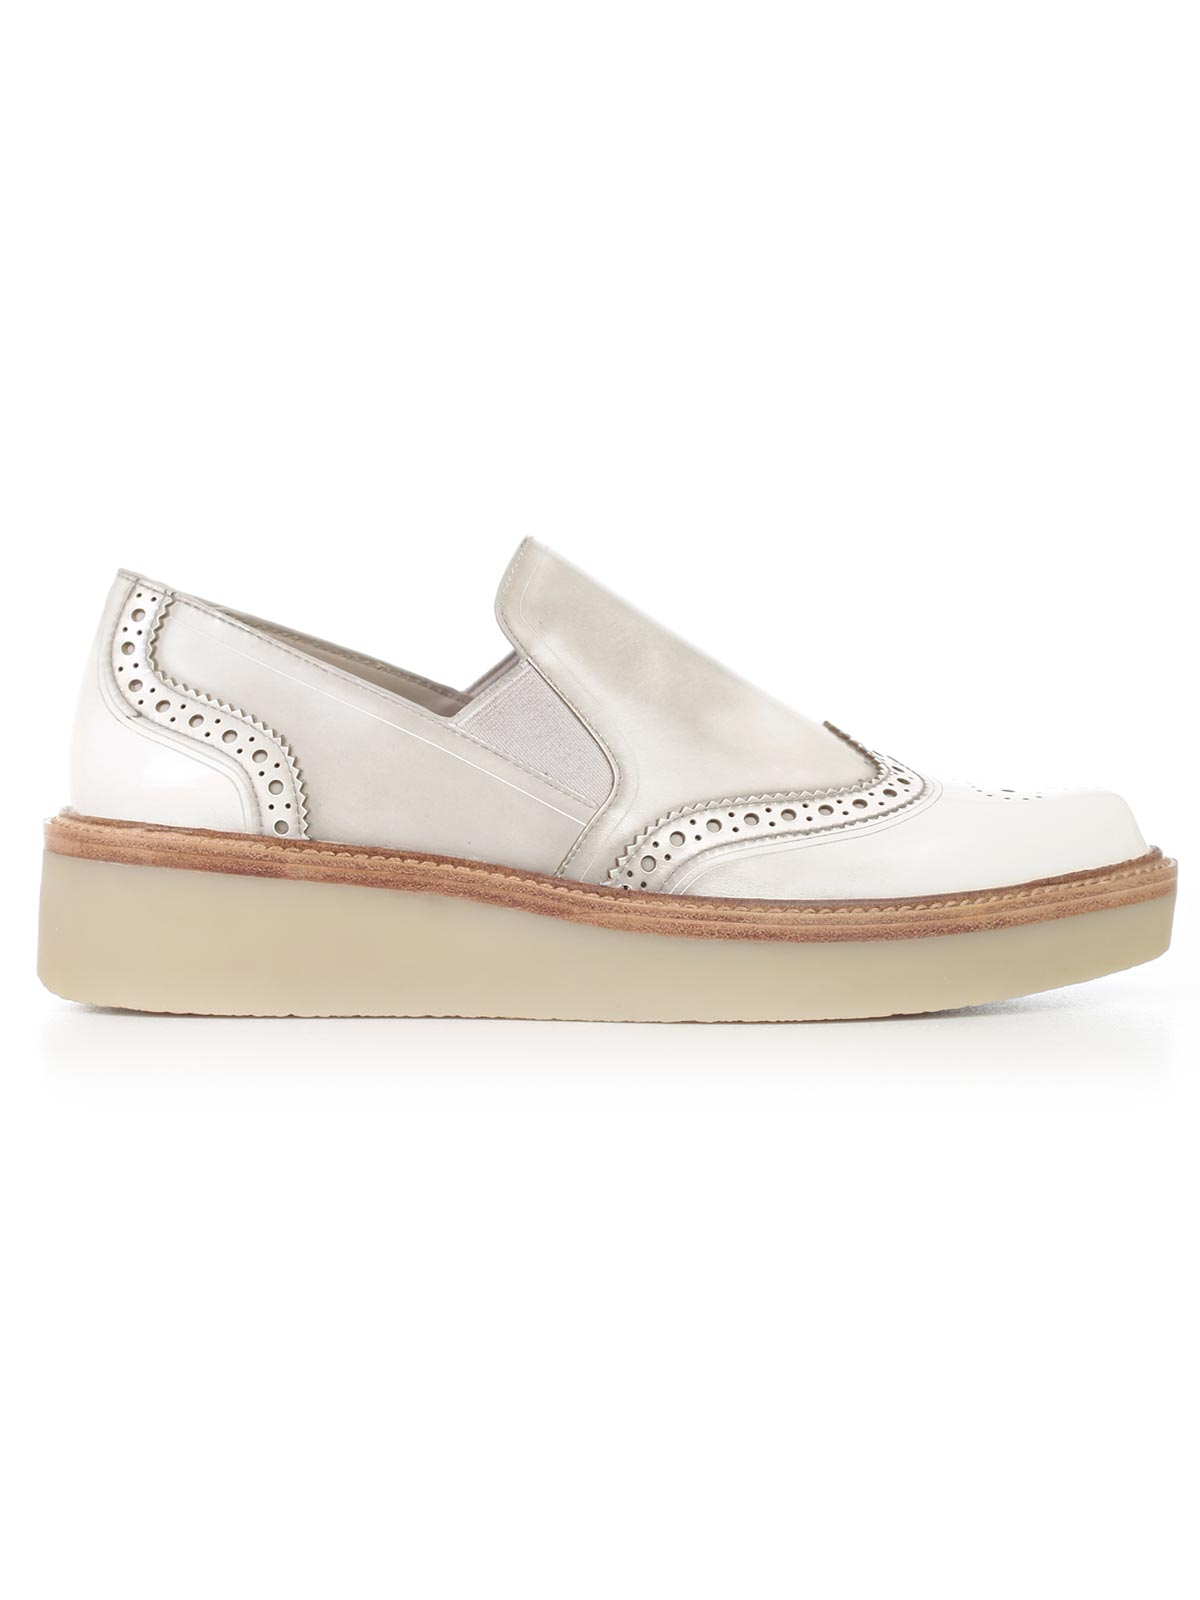 Picture of DKNY FOOTWEAR KARA  BROGUE SLIP ON FLAT